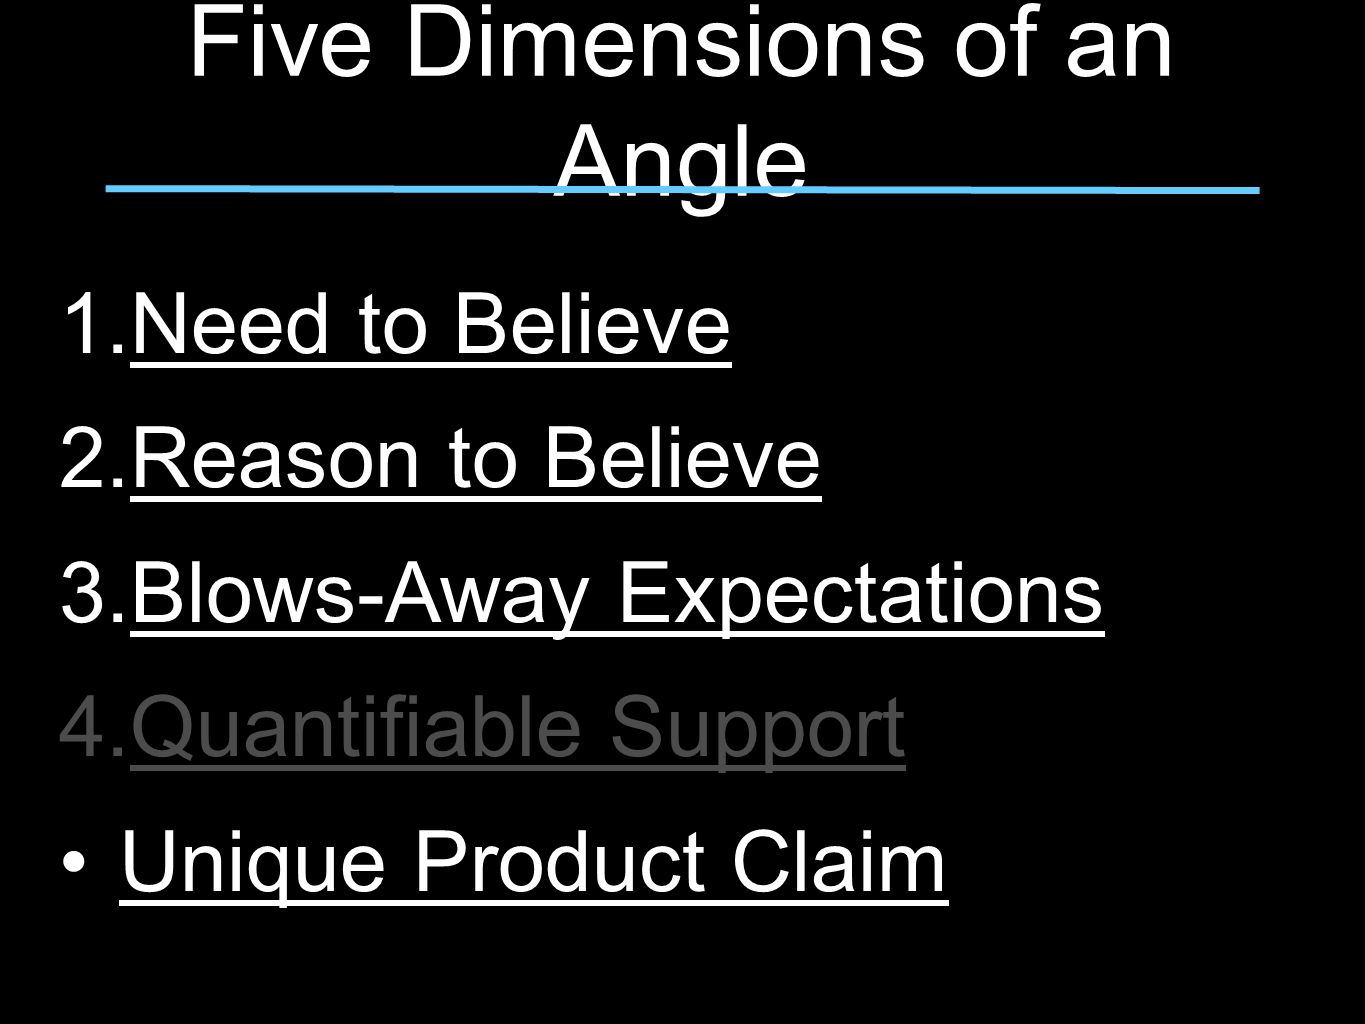 Five Dimensions of an Angle 1.Need to Believe 2.Reason to Believe 3.Blows-Away Expectations 4.Quantifiable Support Unique Product Claim